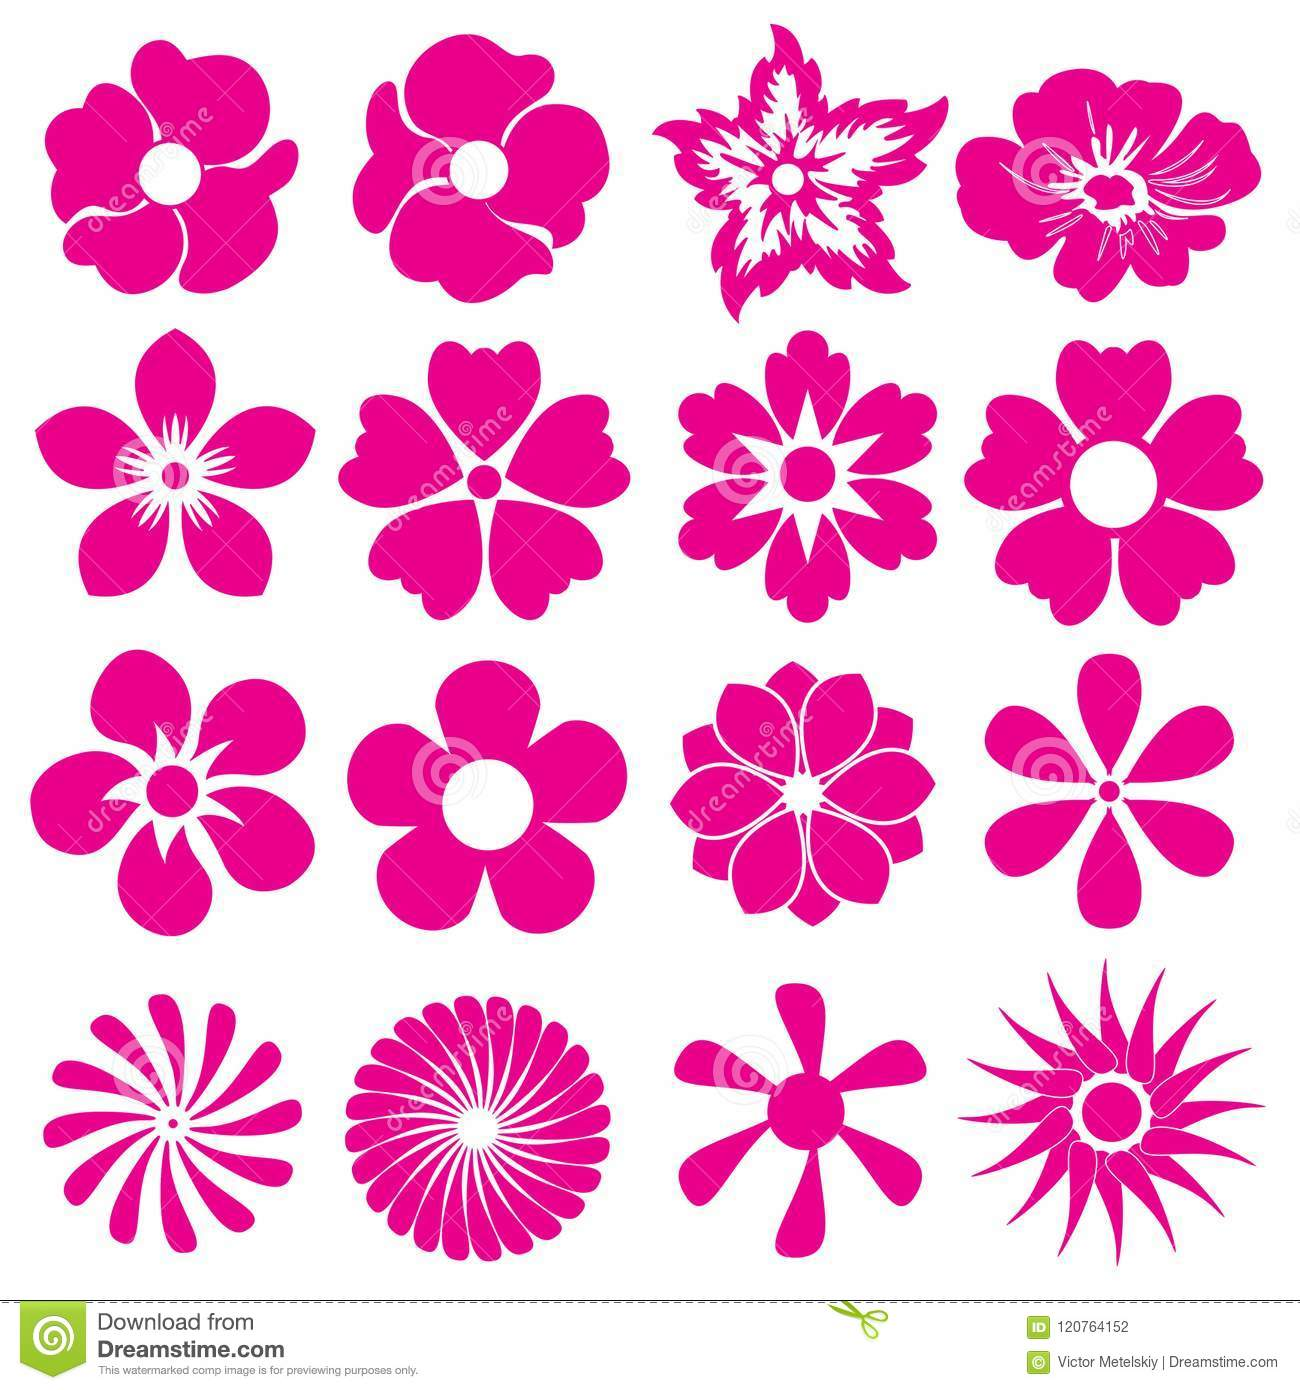 hight resolution of flower icon set different type of flowers vector illustration